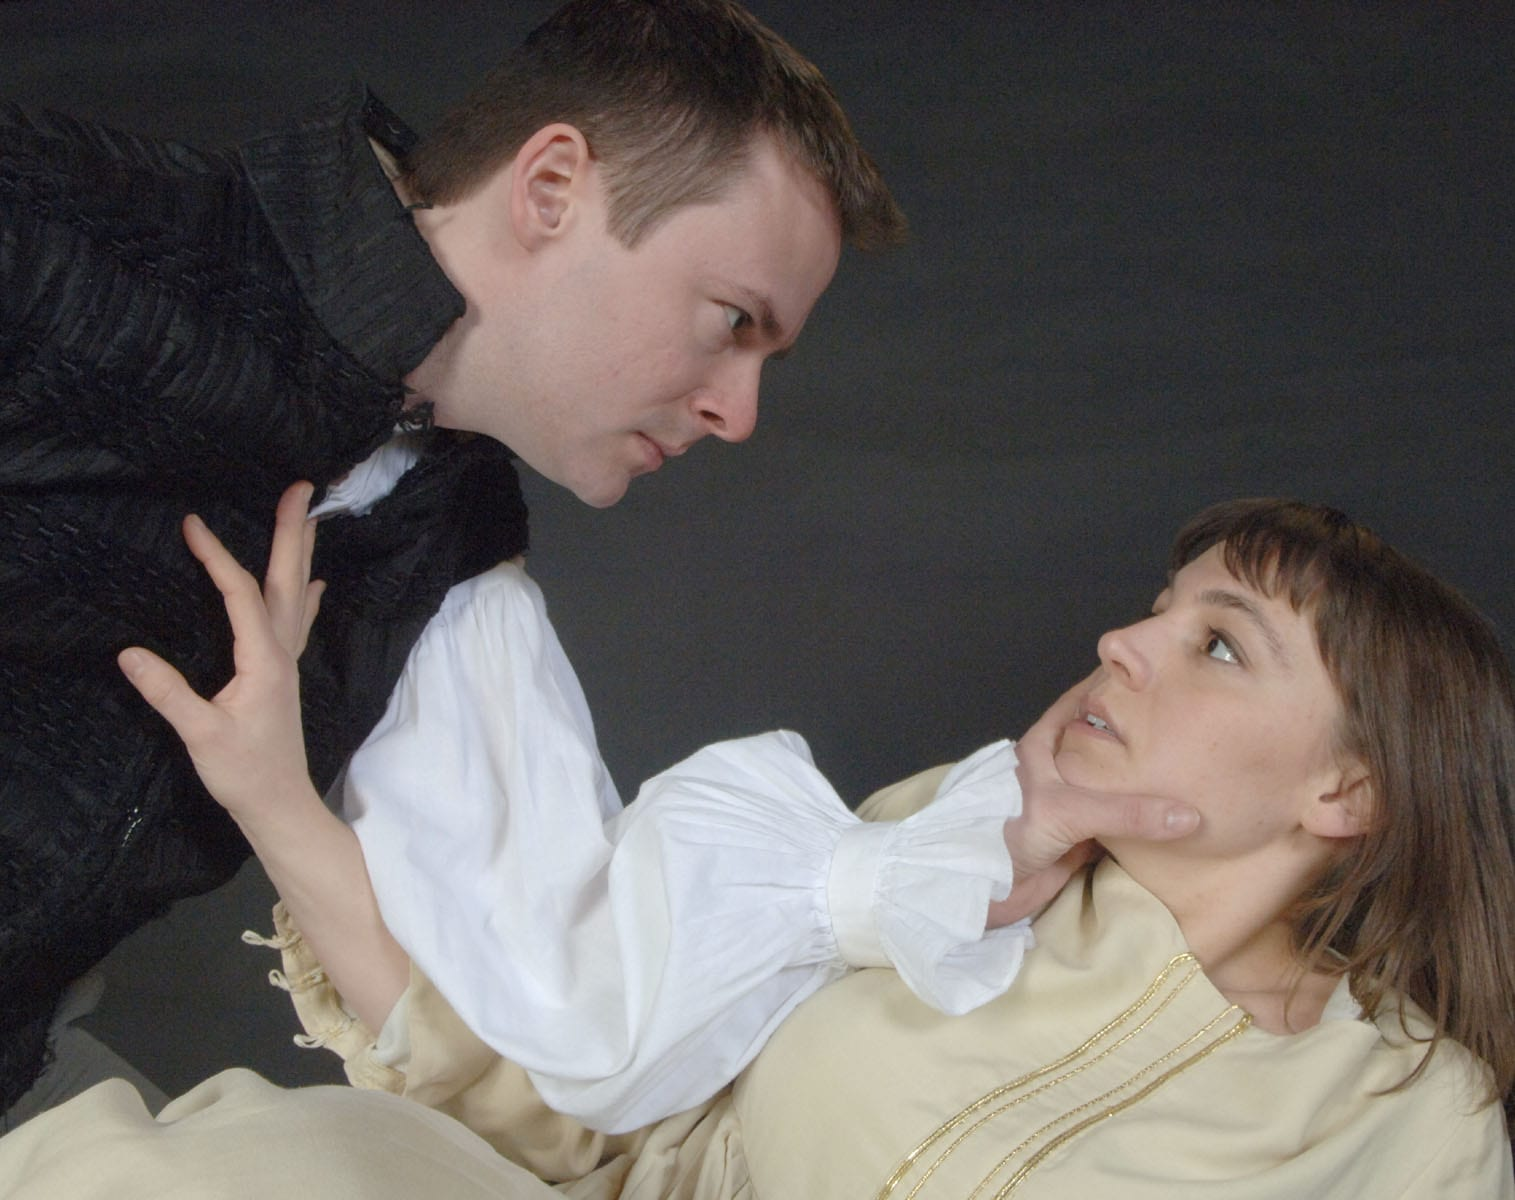 Clarence Wethern and Lindsay Marcy in Hamlet. Photo ©2011 Act One, Too, Ltd., courtesy Theatre in the Round.